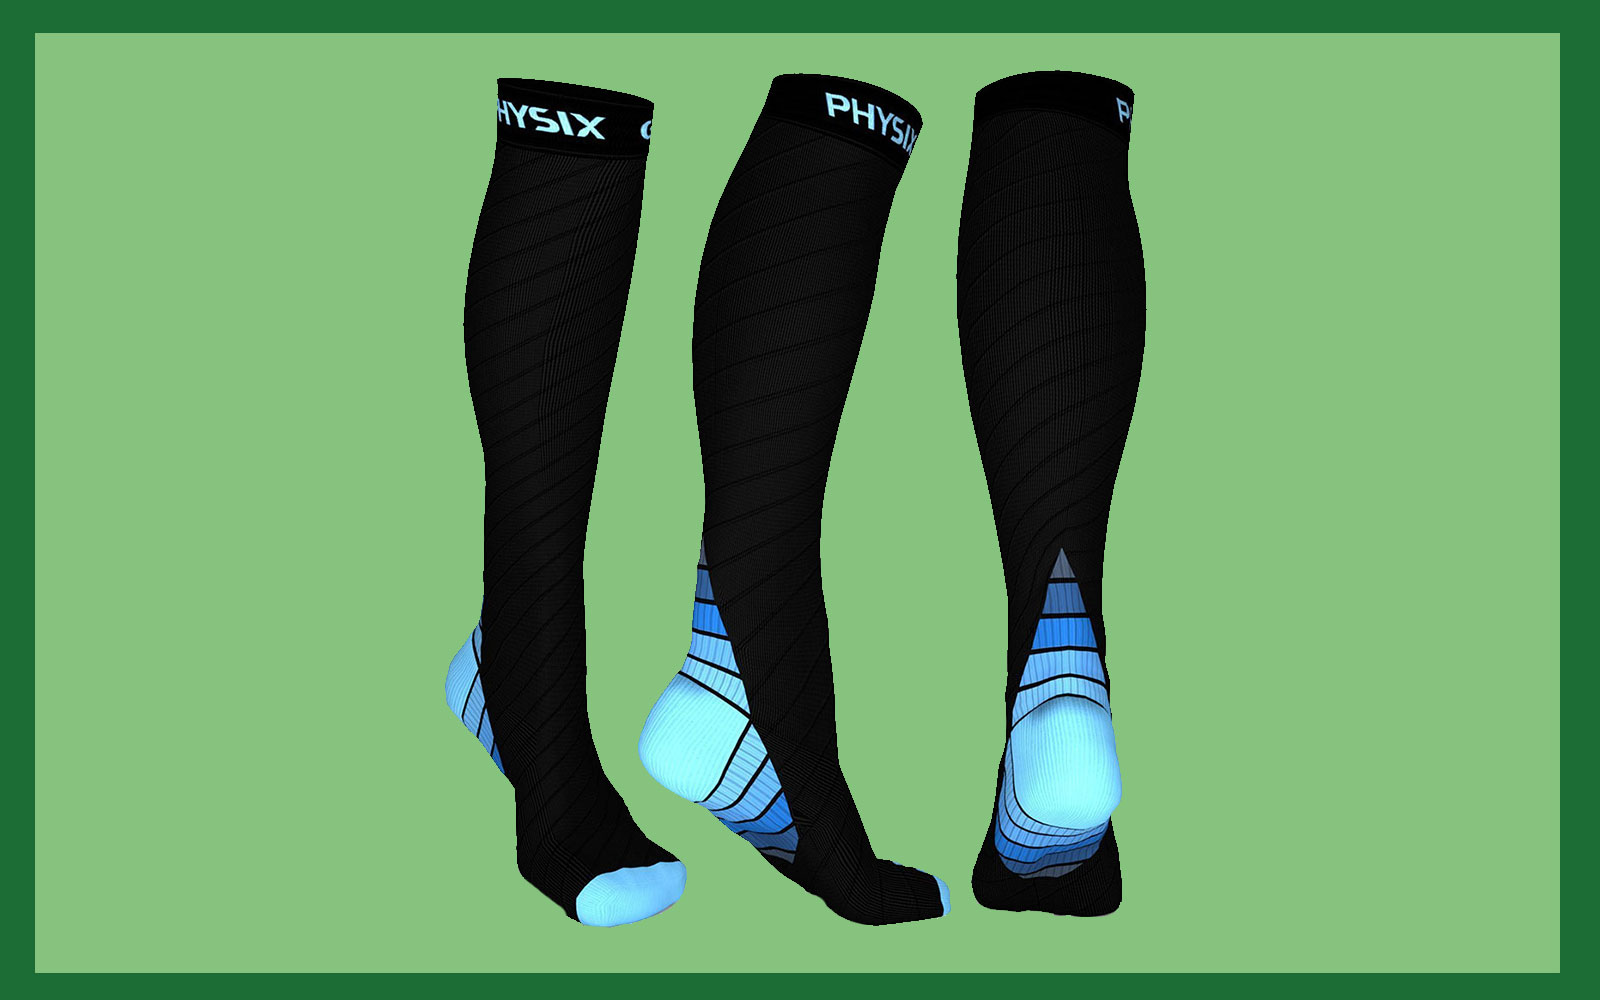 Physix Gear Sport Compression Socks for Men & Women 20-30 mmHg - Athletic Fit